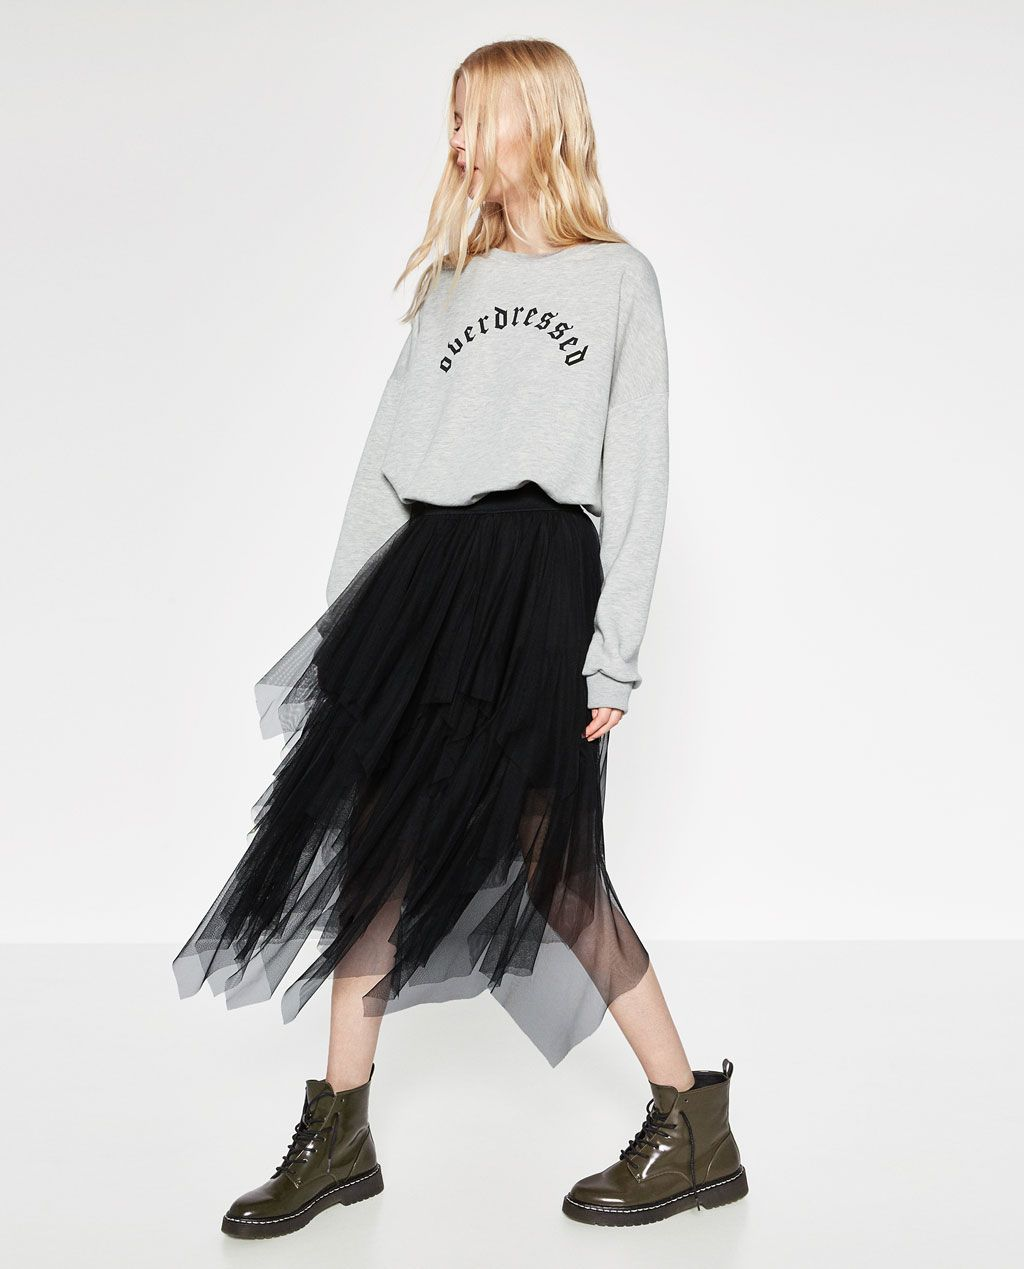 31f7d394c7 FRILLY TULLE SKIRT from Zara | Yes! To clothes! | Skirts, Fashion, Tulle